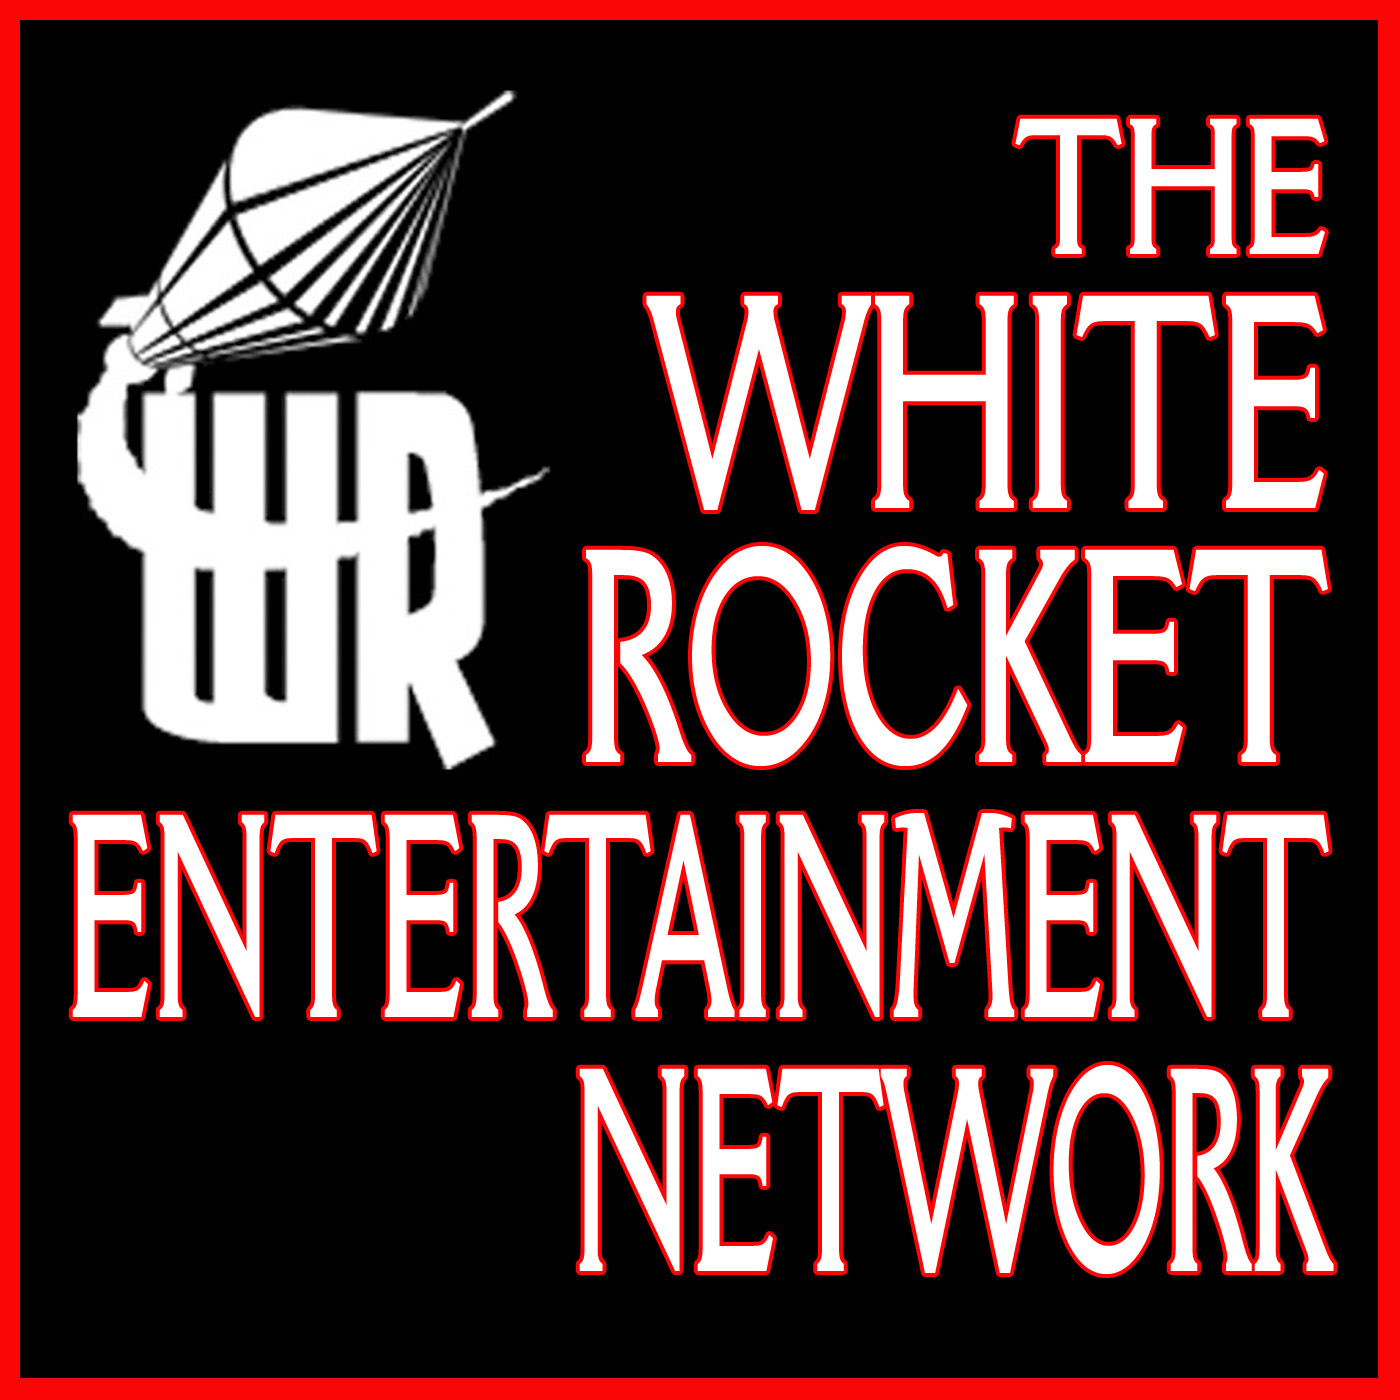 The White Rocket Entertainment Network